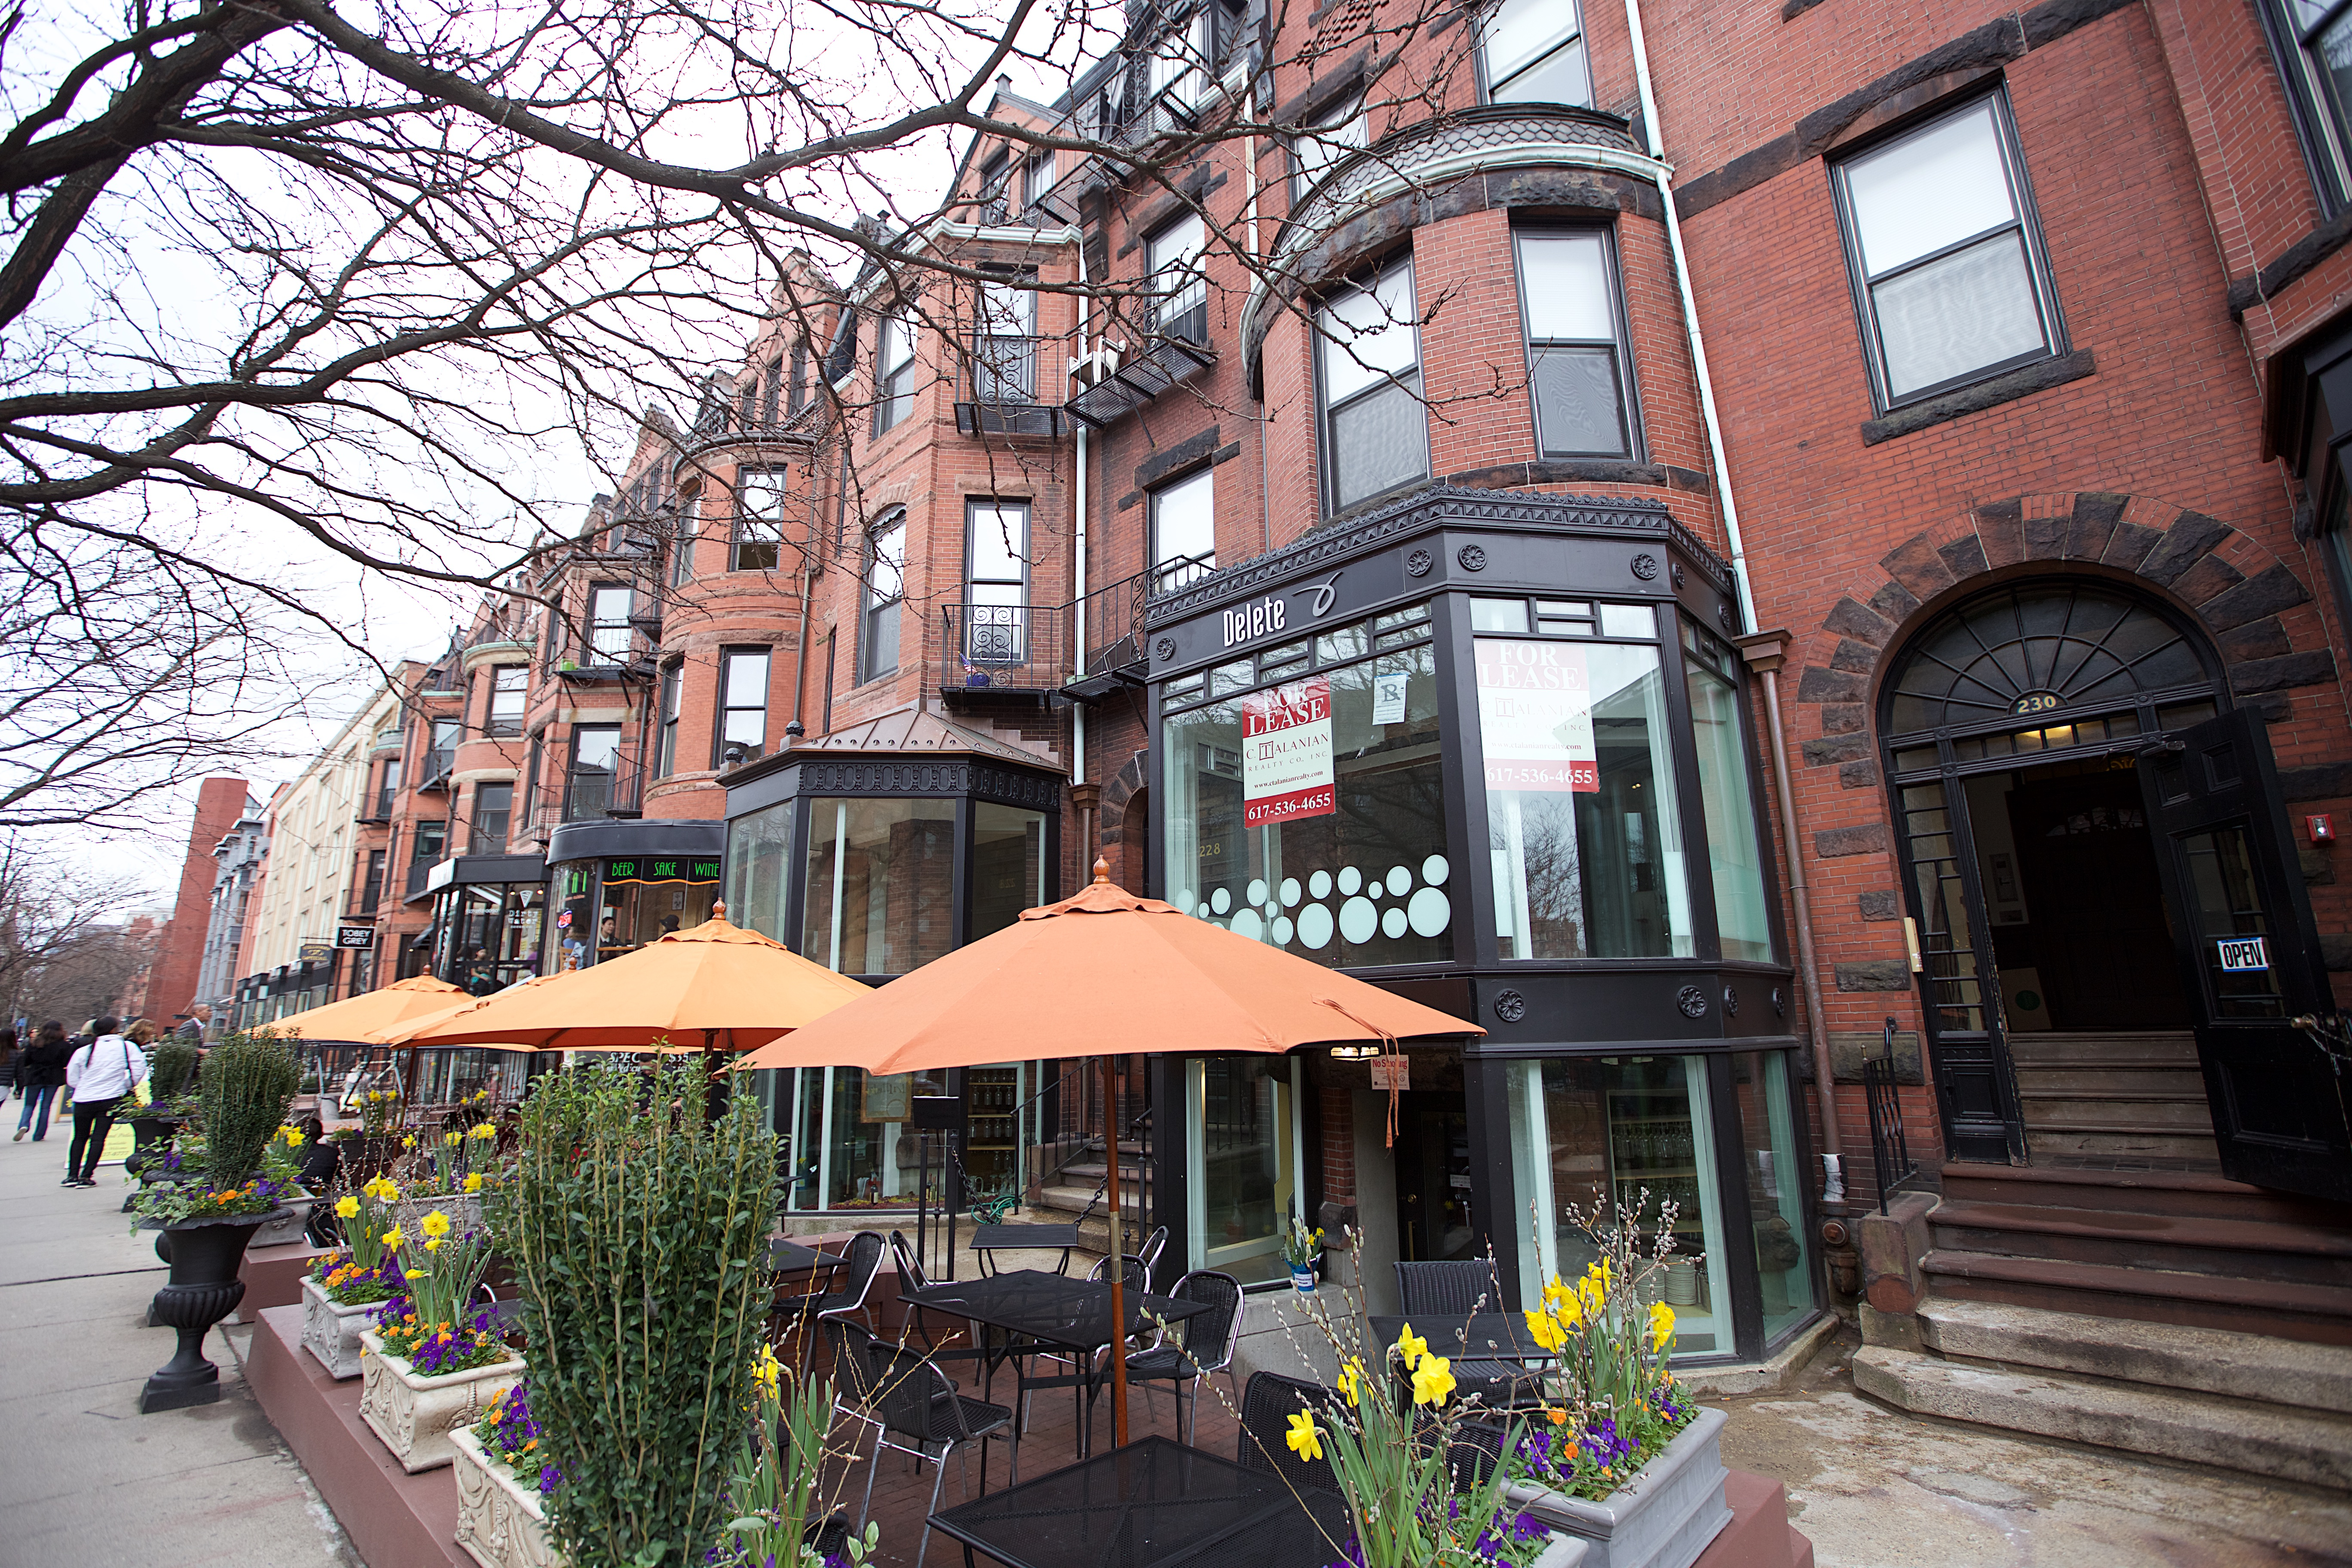 Newbury Street is an upscale shopping area in Boston's historic Back Bay District. The cluster of stores on Newbury Street begin at the Public Garden and end at Massachusetts Avenue to the west.